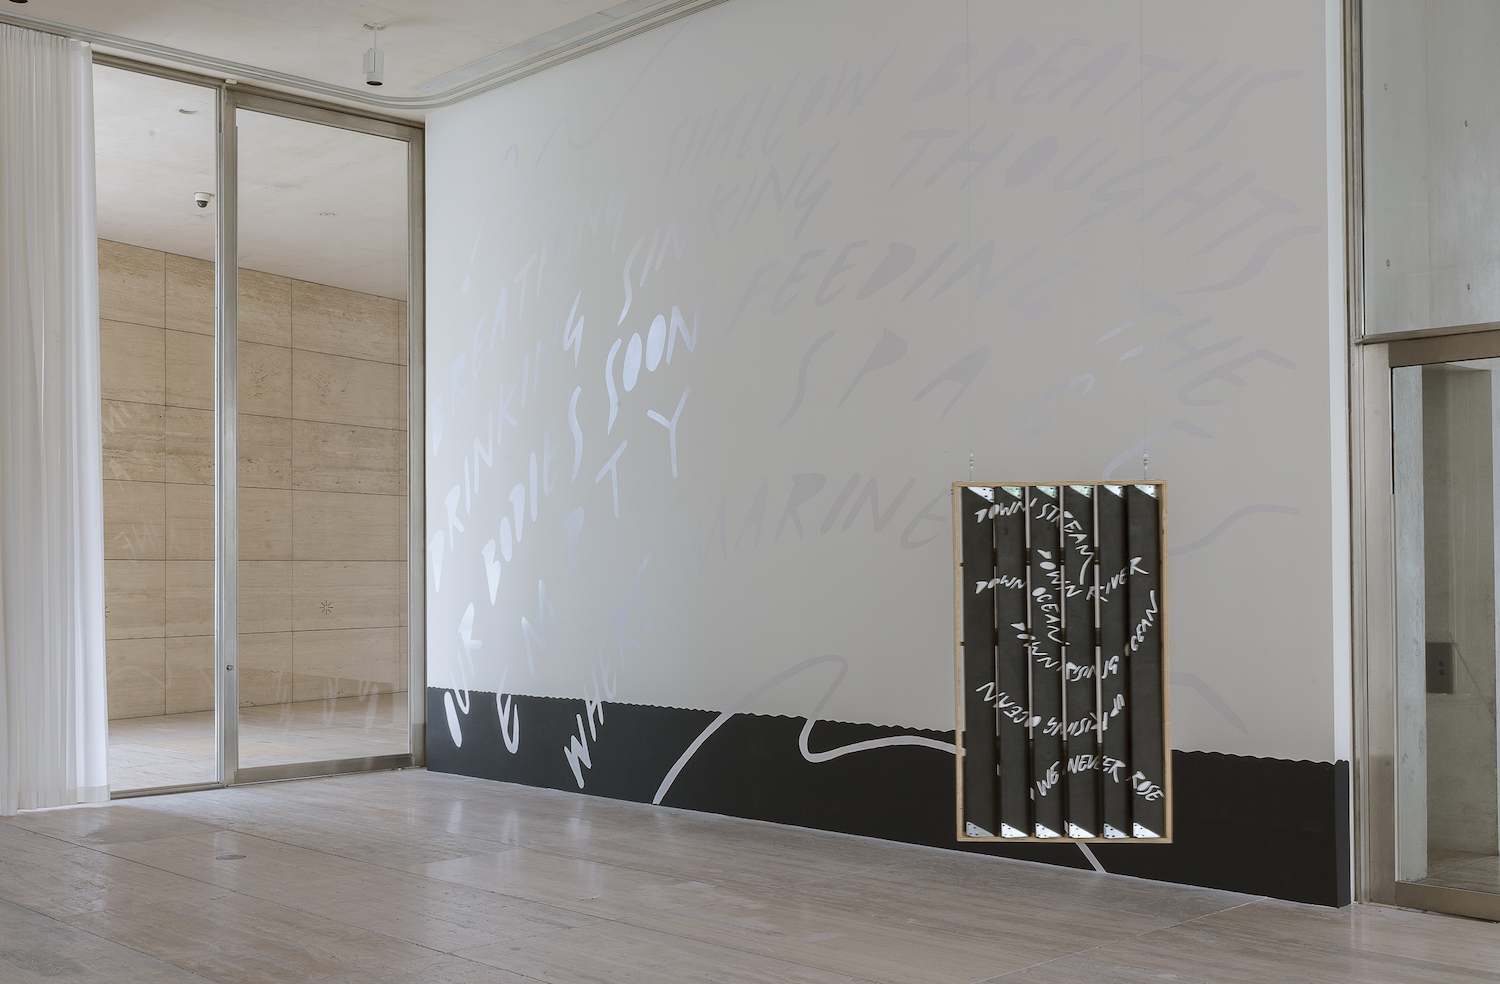 Charlie Godet Thomas, How to make a painting behave like a landscape, 2020. Installation view. Museo Jumex, Mexico City, MX.